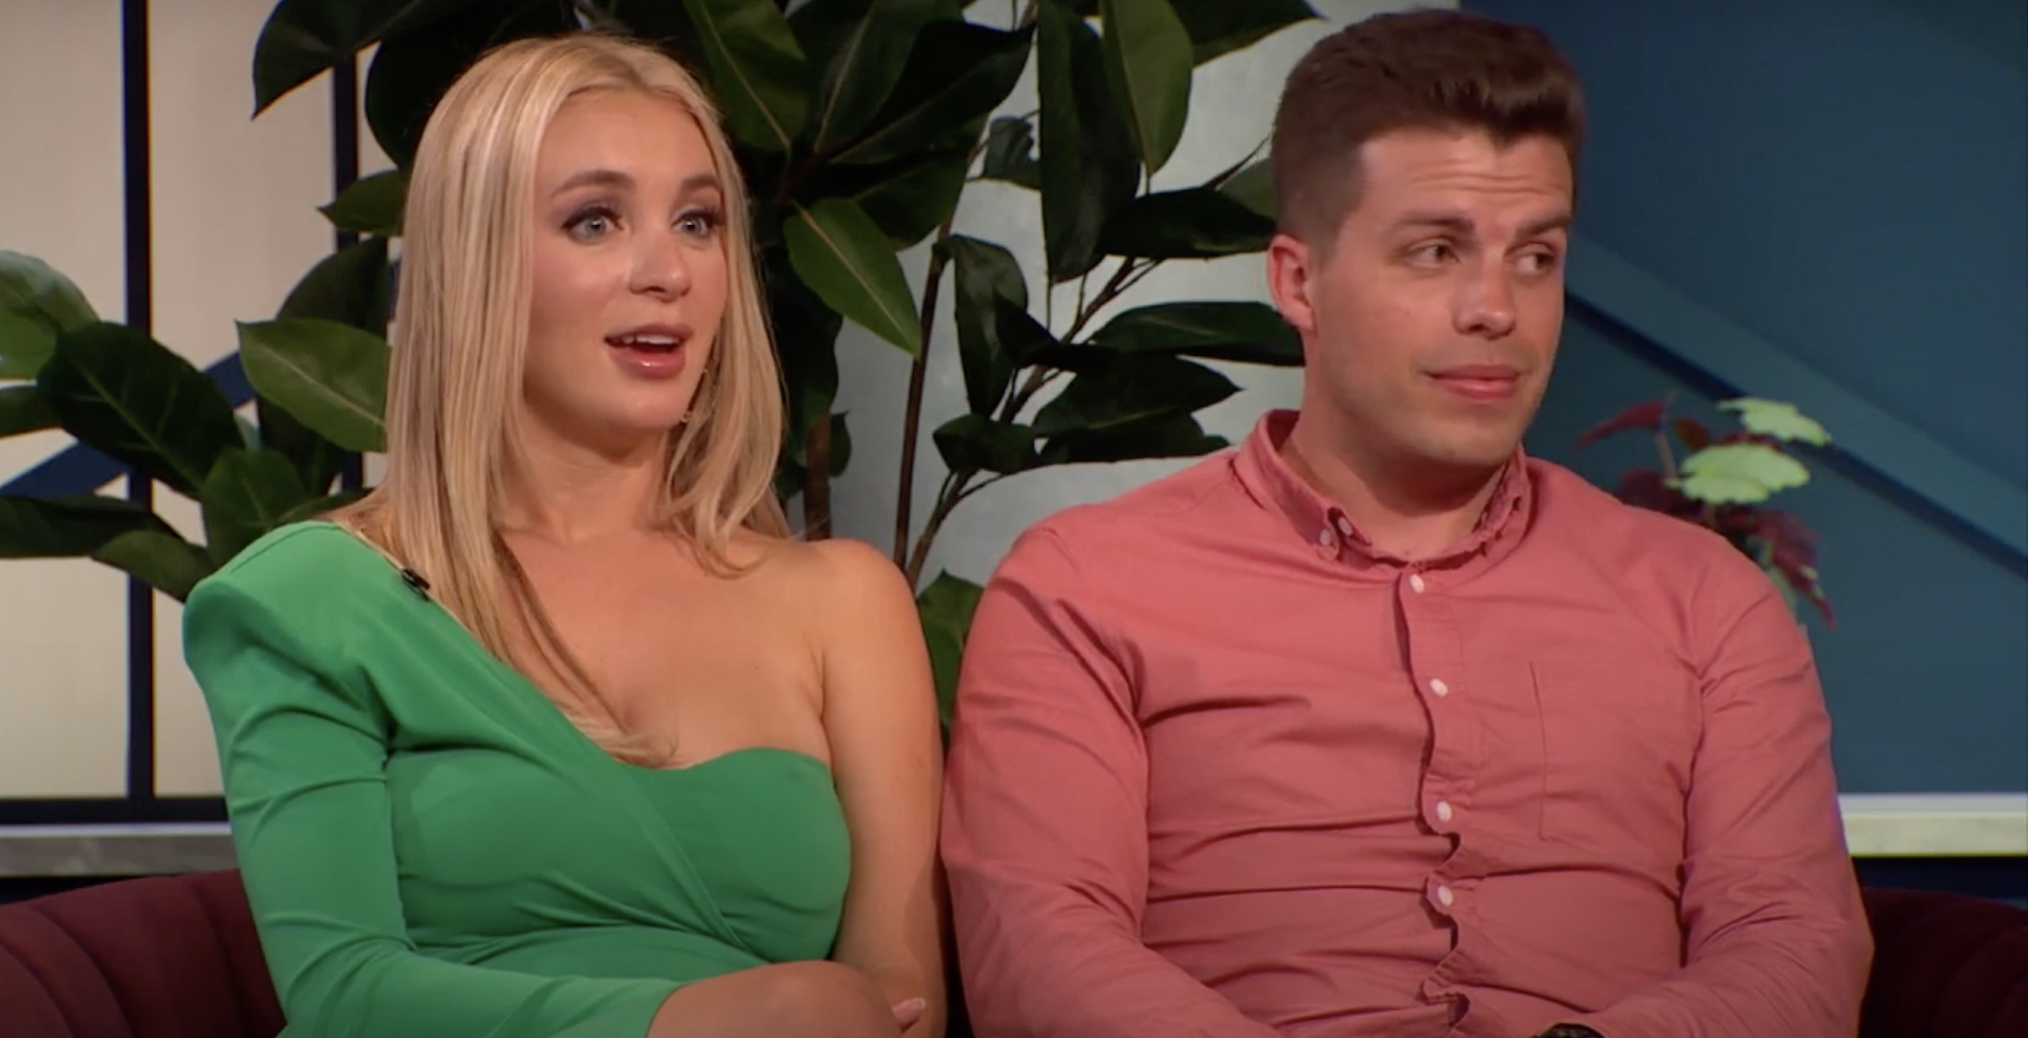 '90 Day Fiancé: Happily Ever After'? Stars Yara and Jovi at Tell All